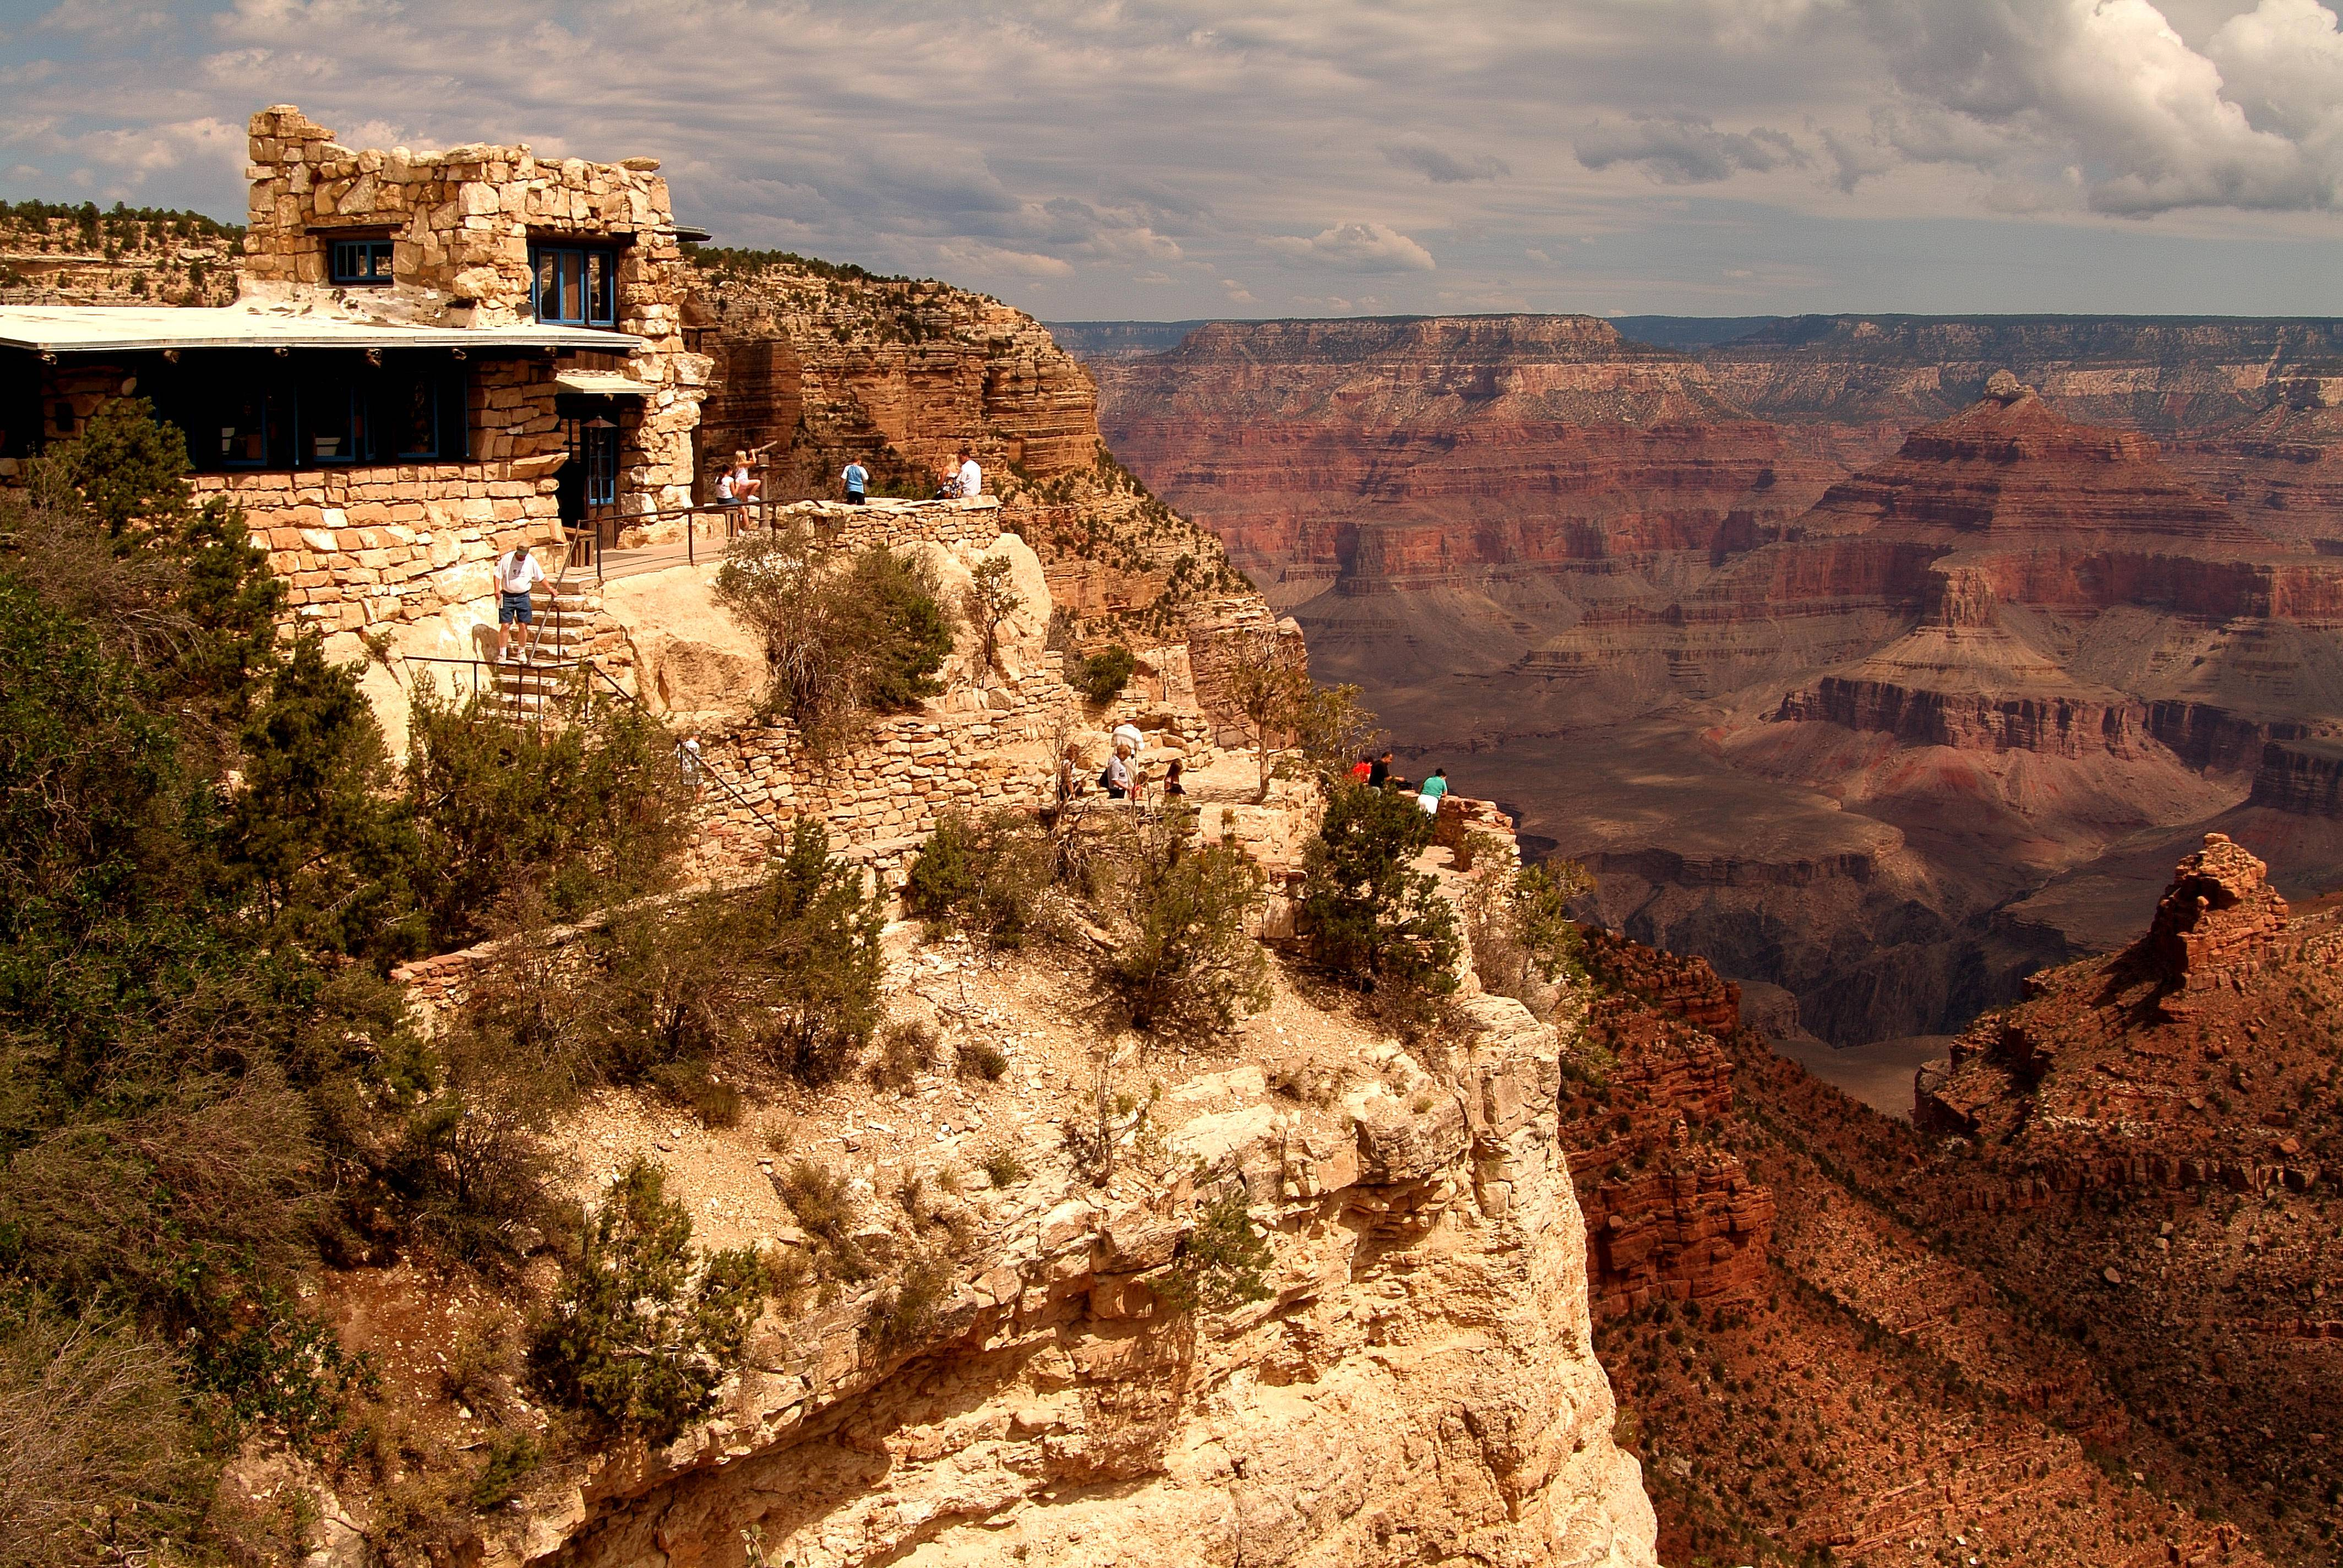 Lookout Studio is one of a number of attractions available for sightseeing at the South Rim of the Grand Canyon. The Grand Canyon Railway carries 225,000 visitors a year to the South Rim from Williams, Ariz.